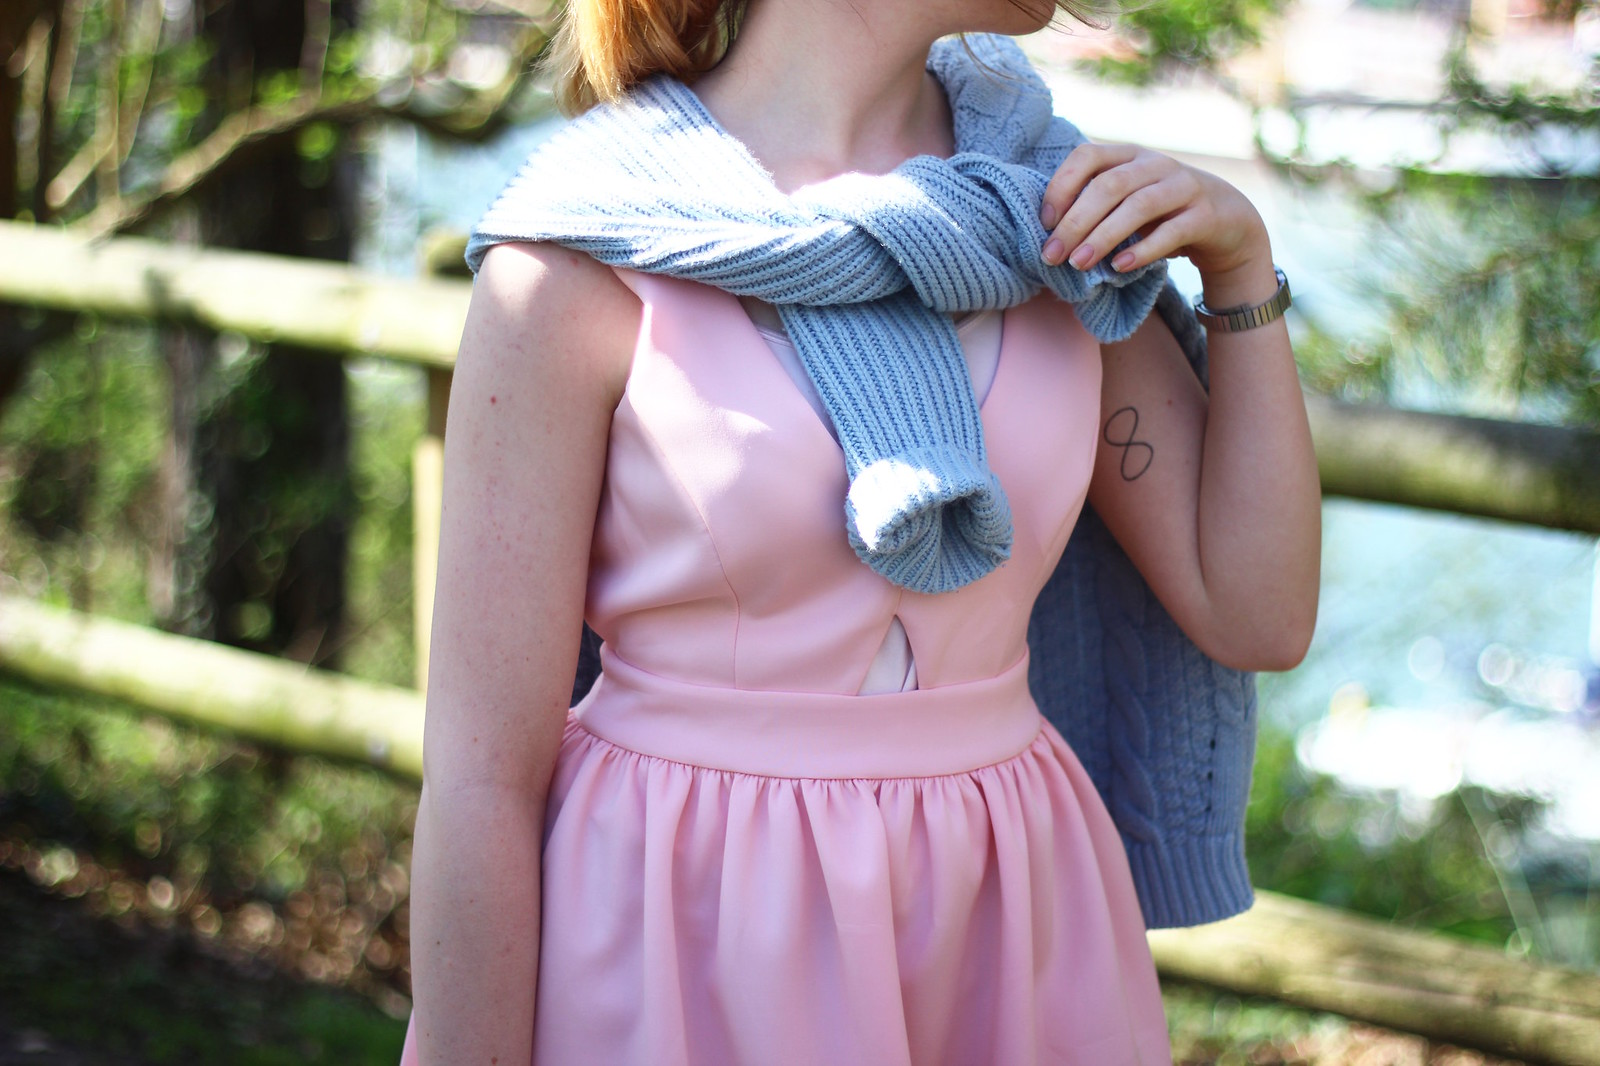 5pasteloutfit, pastel, asos, pink, blue, spring, summer, 2014, trend, fashion, style, retro, cat-eye sunglasses, knitwear, 50's, vintage, inspired, high street, personal style, stylepeaches, blog, outfit, look